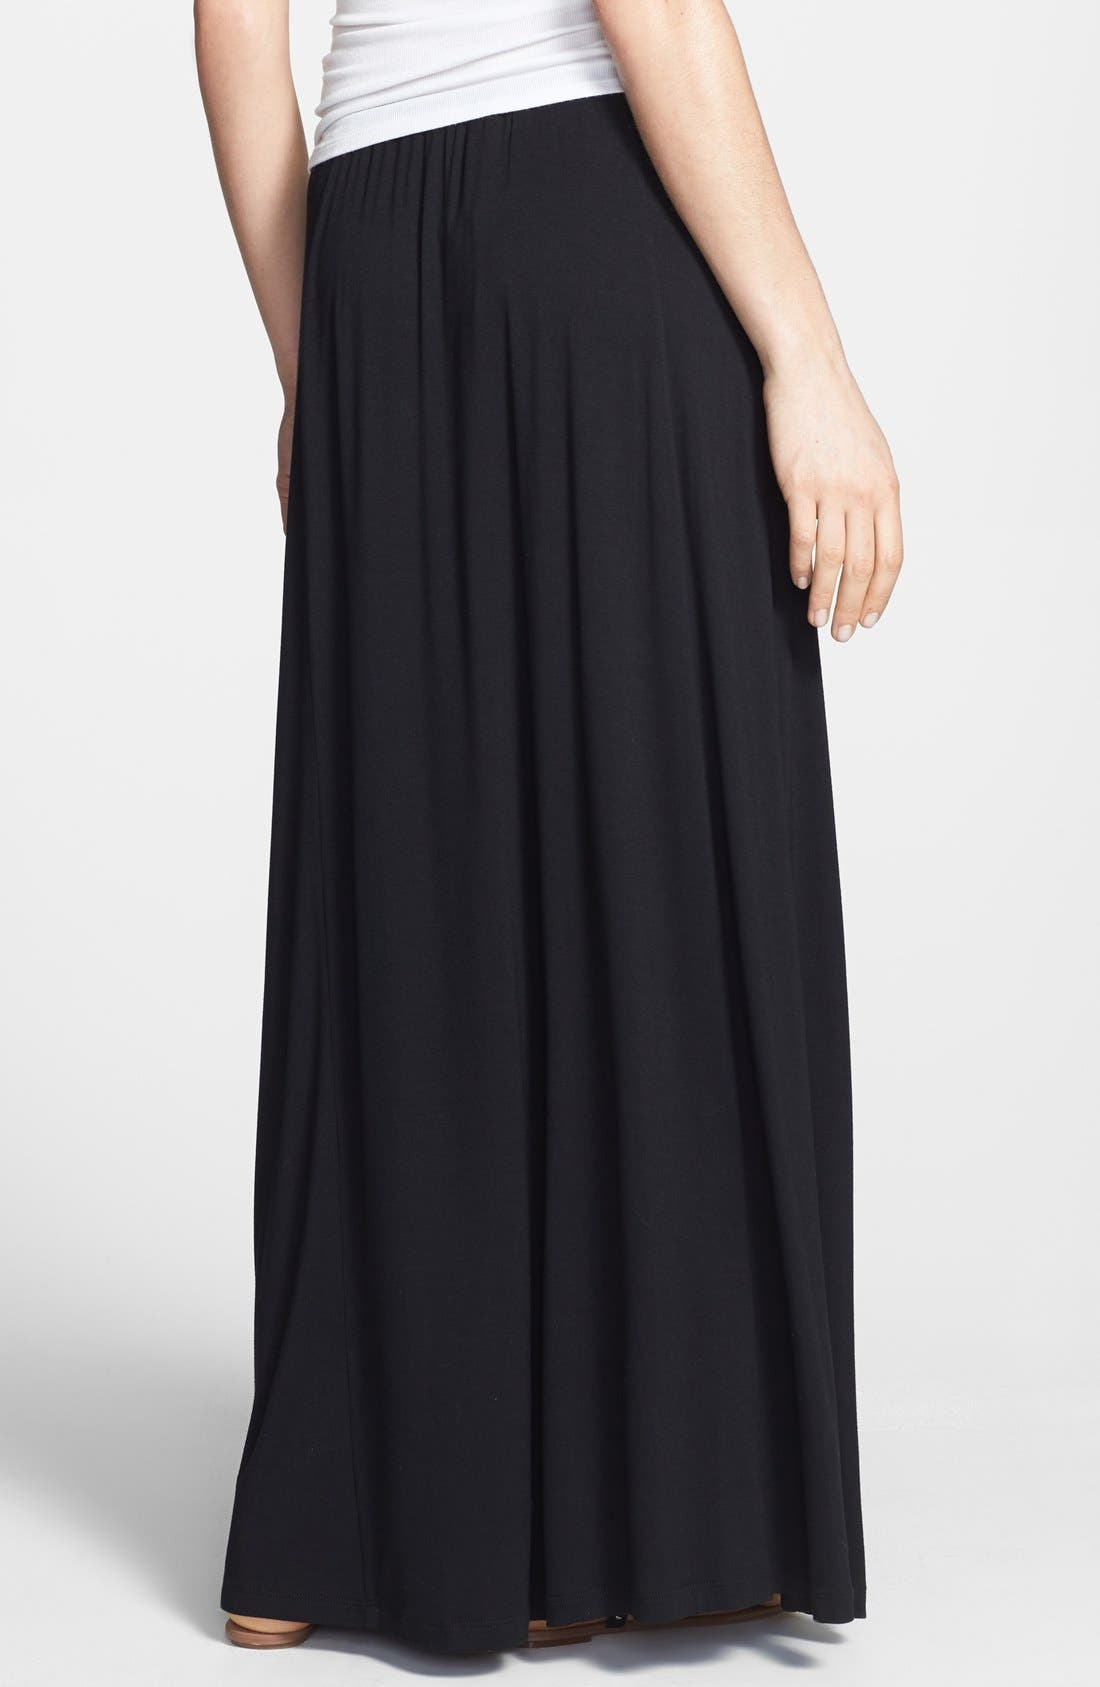 Pocket Knit Maxi Skirt,                             Alternate thumbnail 3, color,                             001